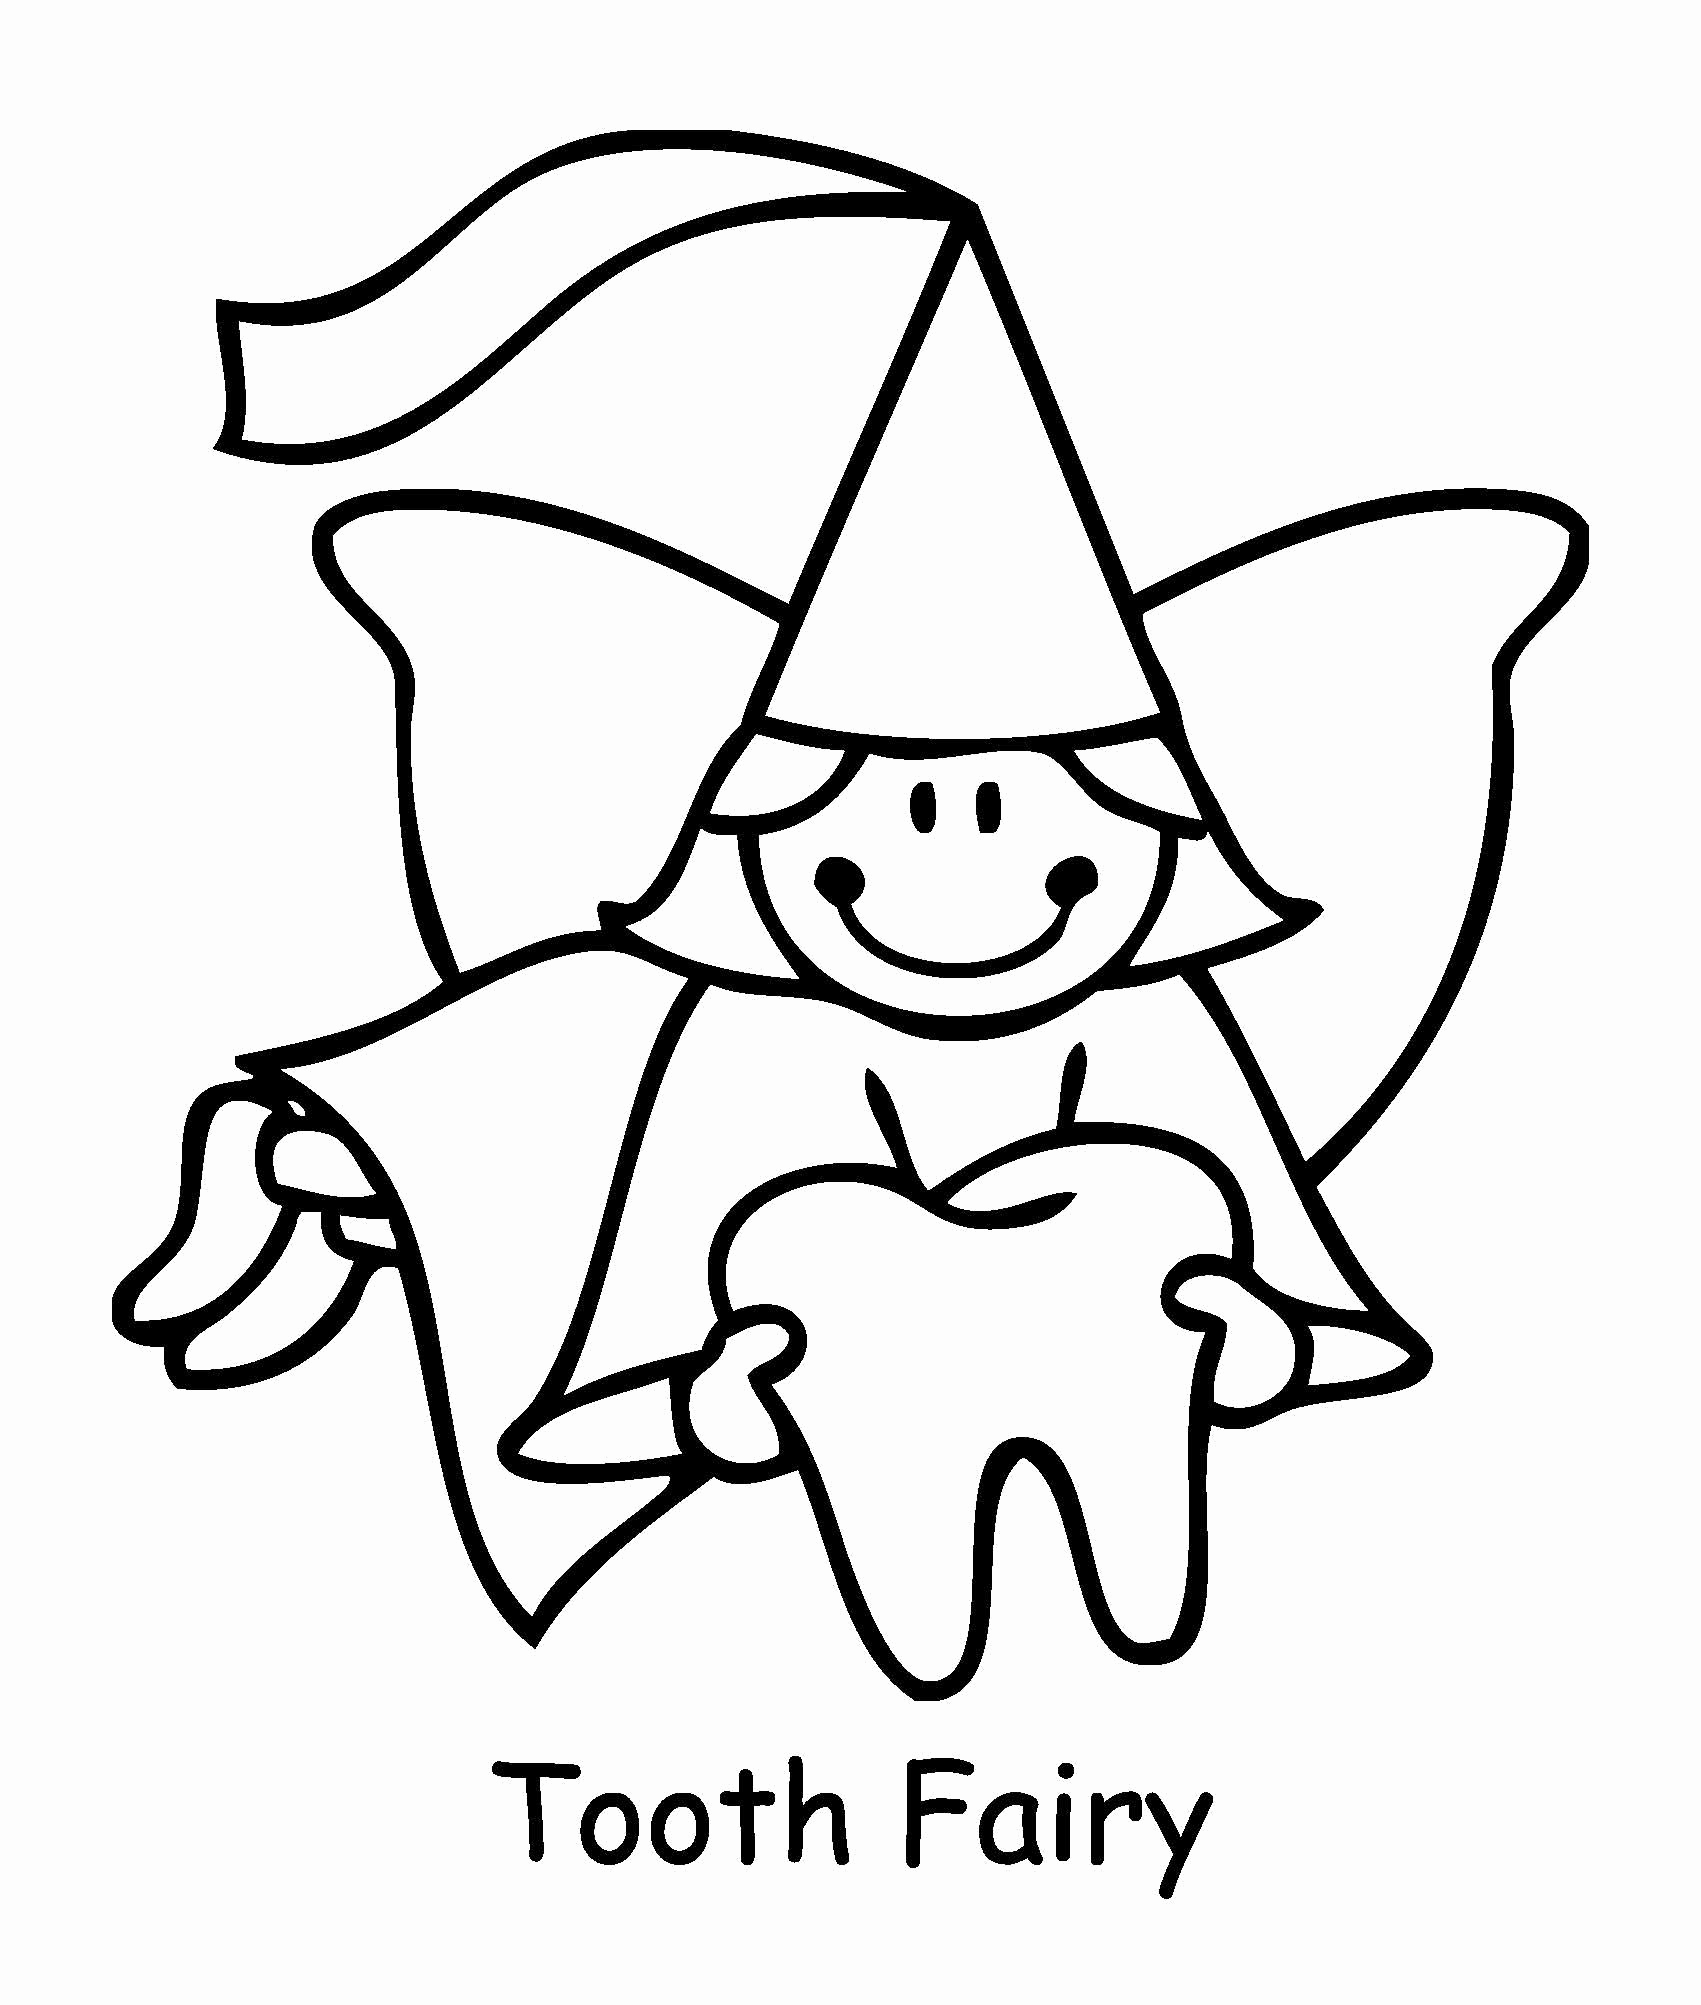 Dental Coloring Pages Collection Teeth Coloring Pages Coloring to Print Of The Most Awesome Dental Coloring Sheets Coloring Pages & Coloring Gallery